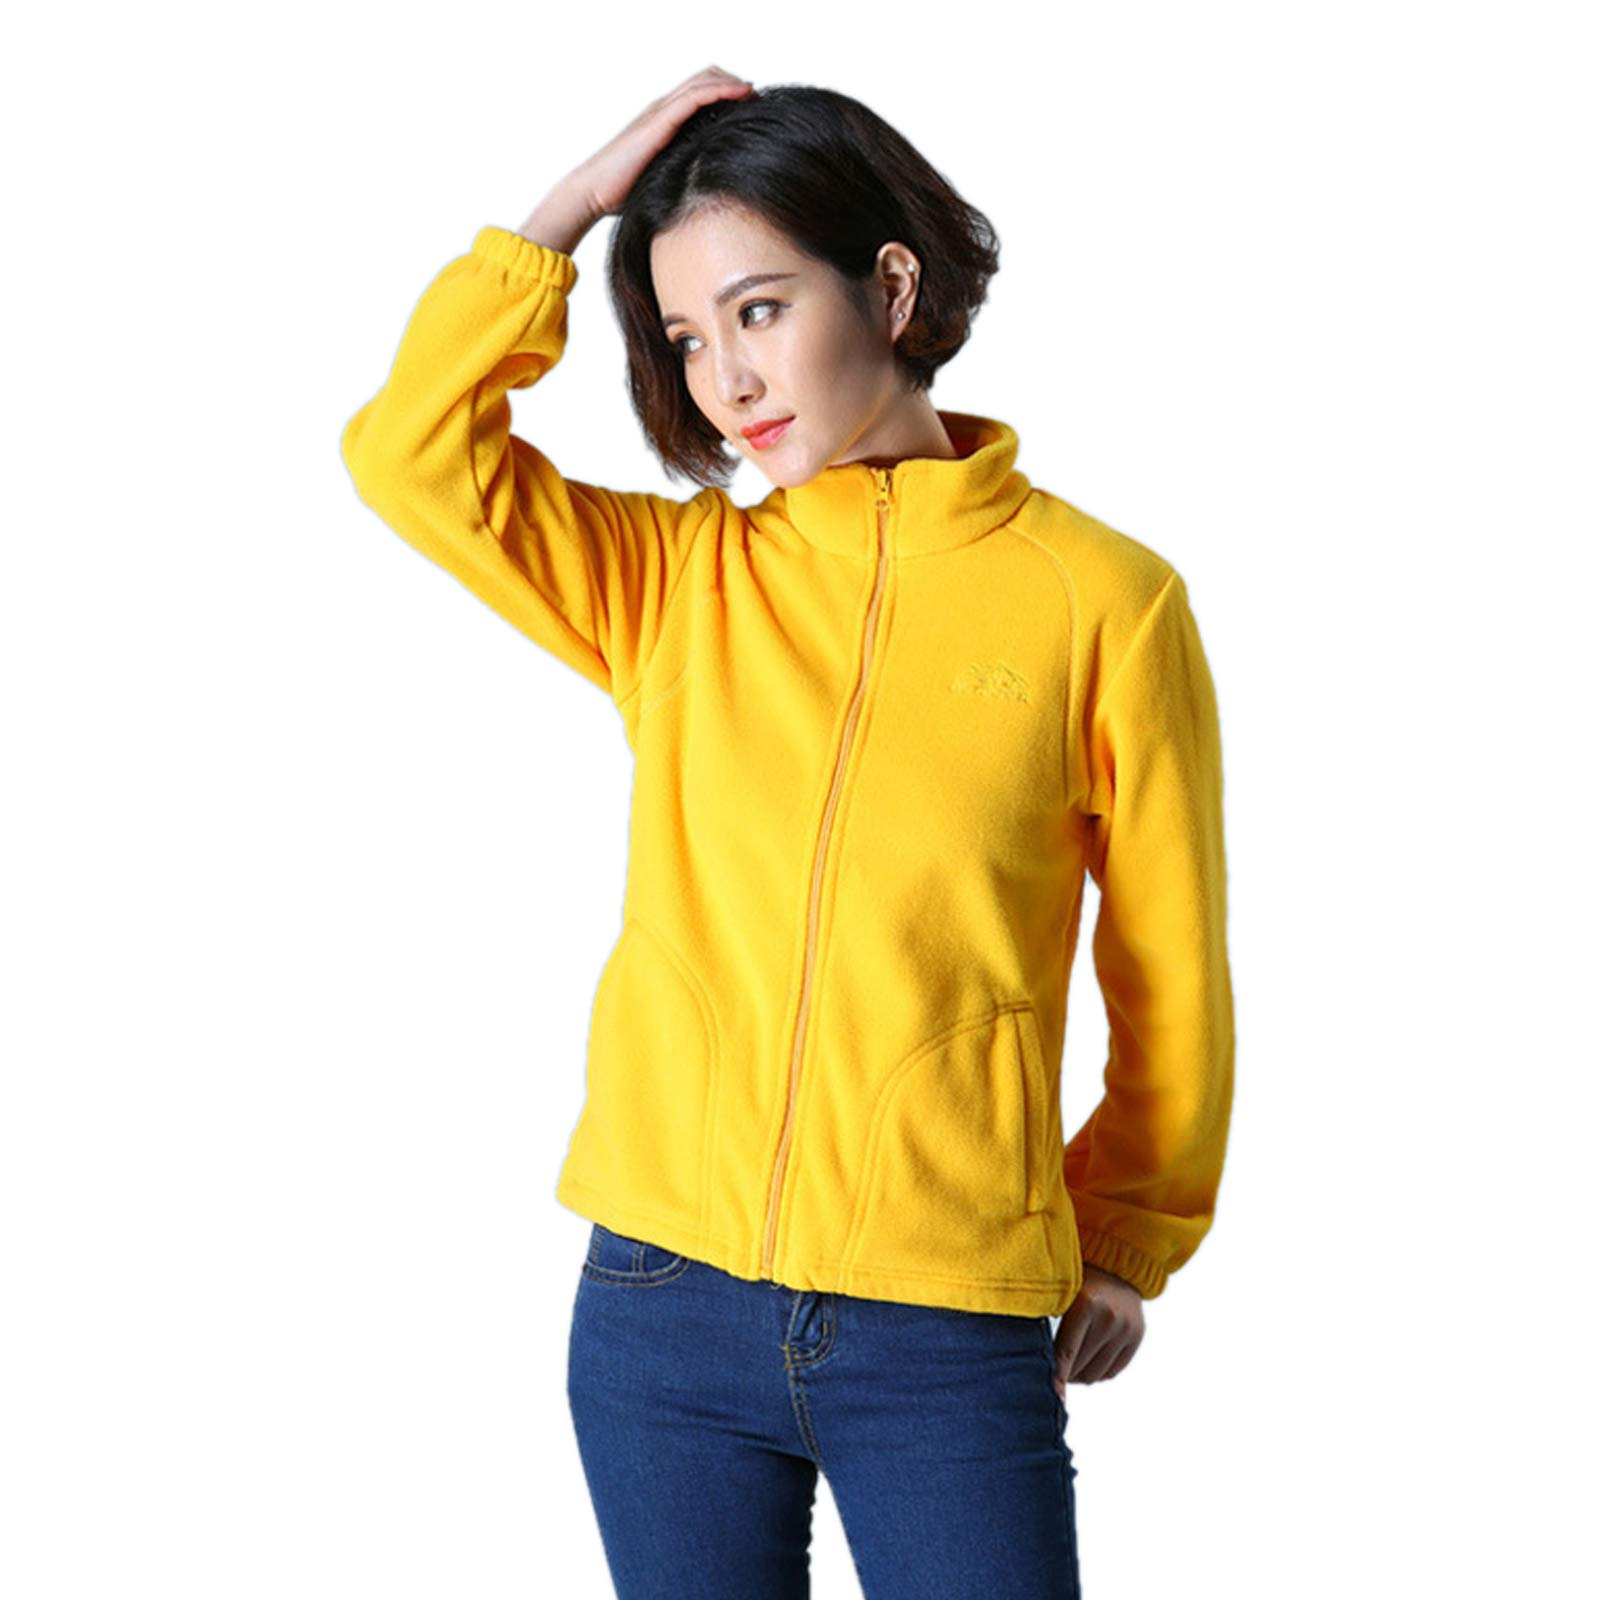 Elonglin Womens Fleece Jacket Full Zip Stand Collar Sportwear Top Outwear Yellow2 Bust 36.2''(Asie S) by Elonglin